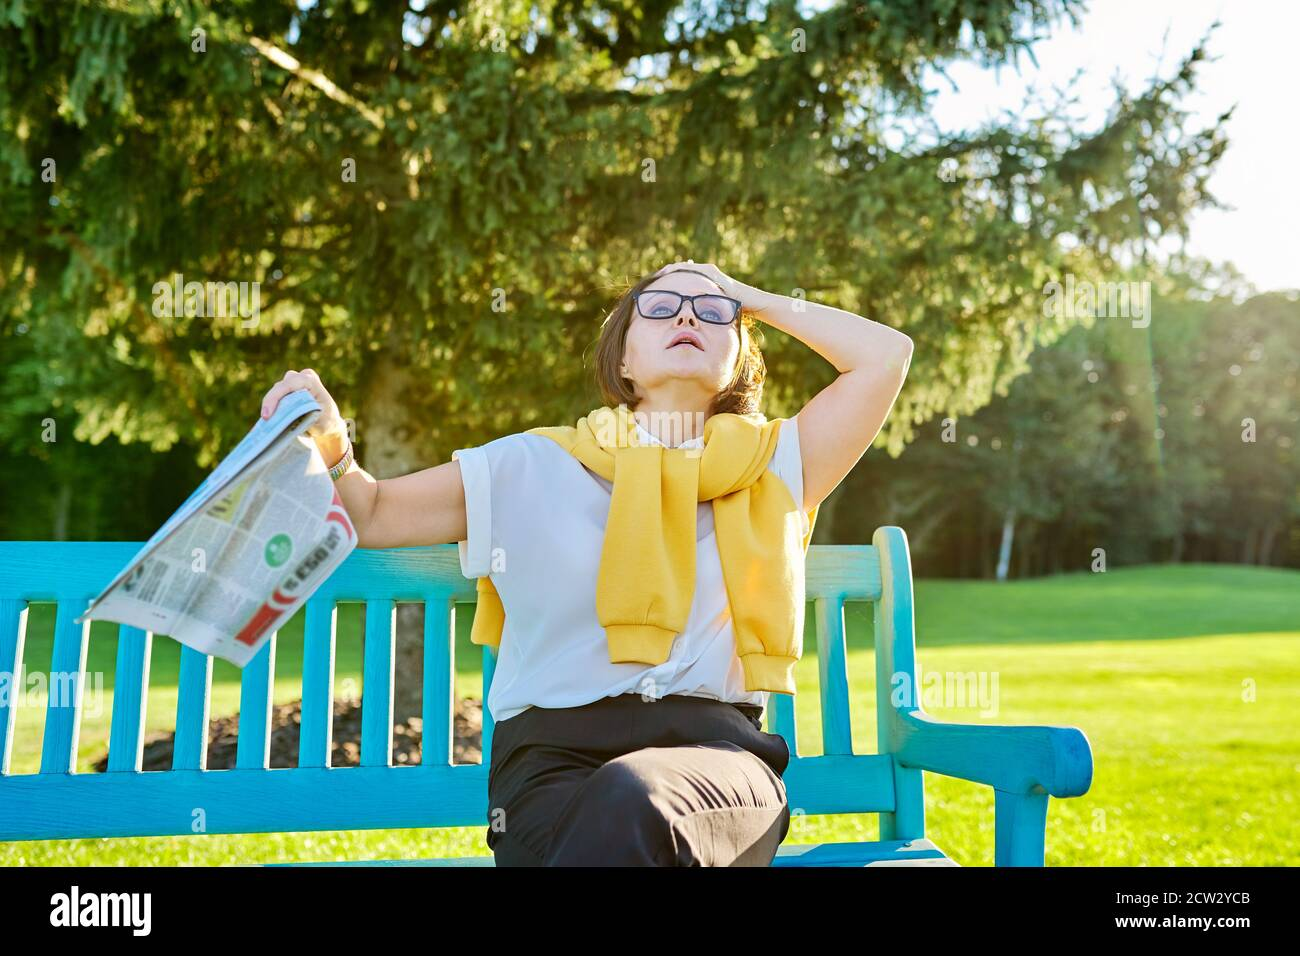 Symptoms of menopause in mature woman, female waves newspaper to cool off Stock Photo